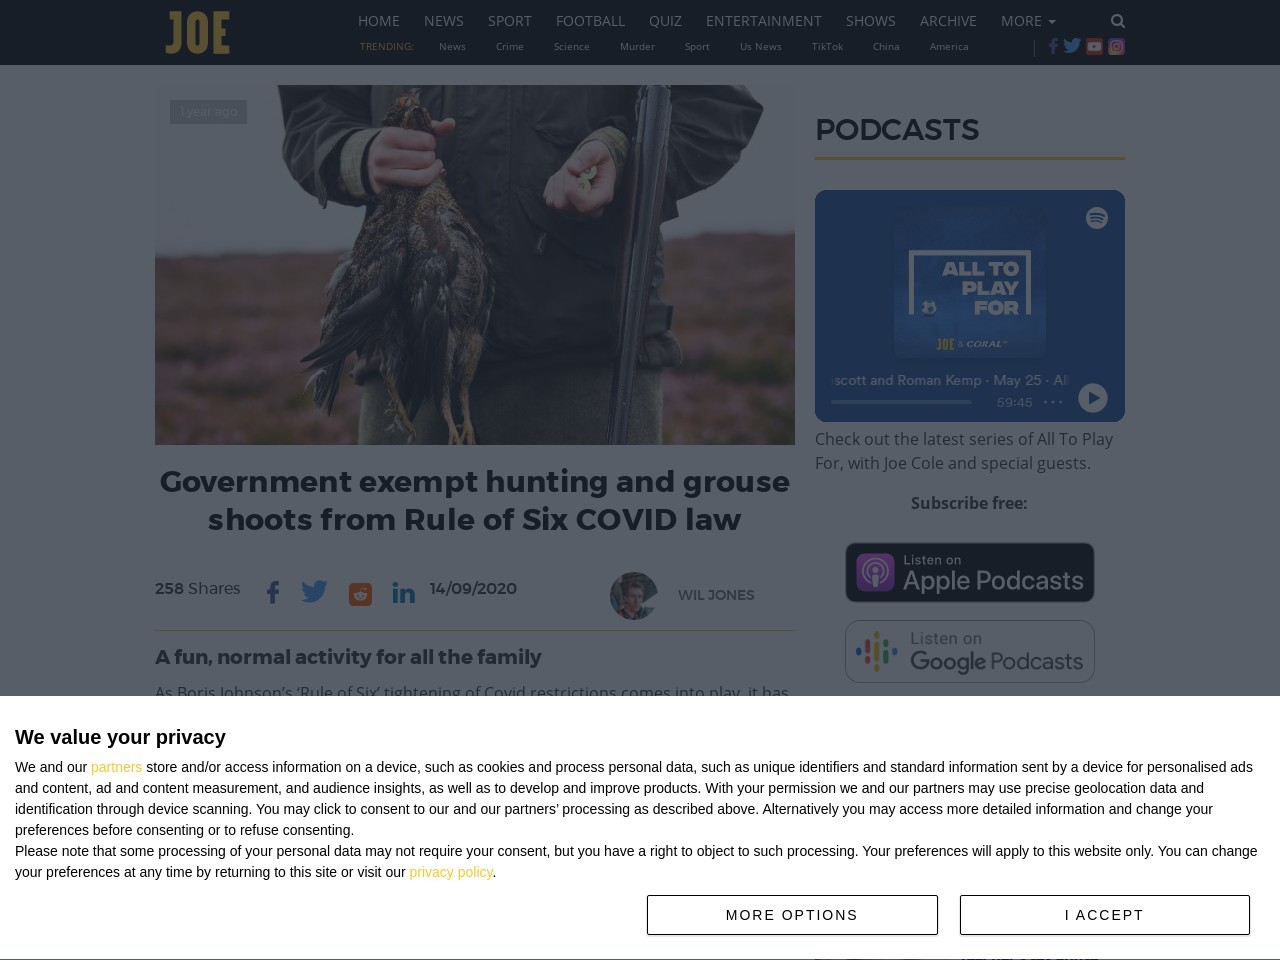 Government exempt hunting and grouse shoots from Rule of Six COVID law